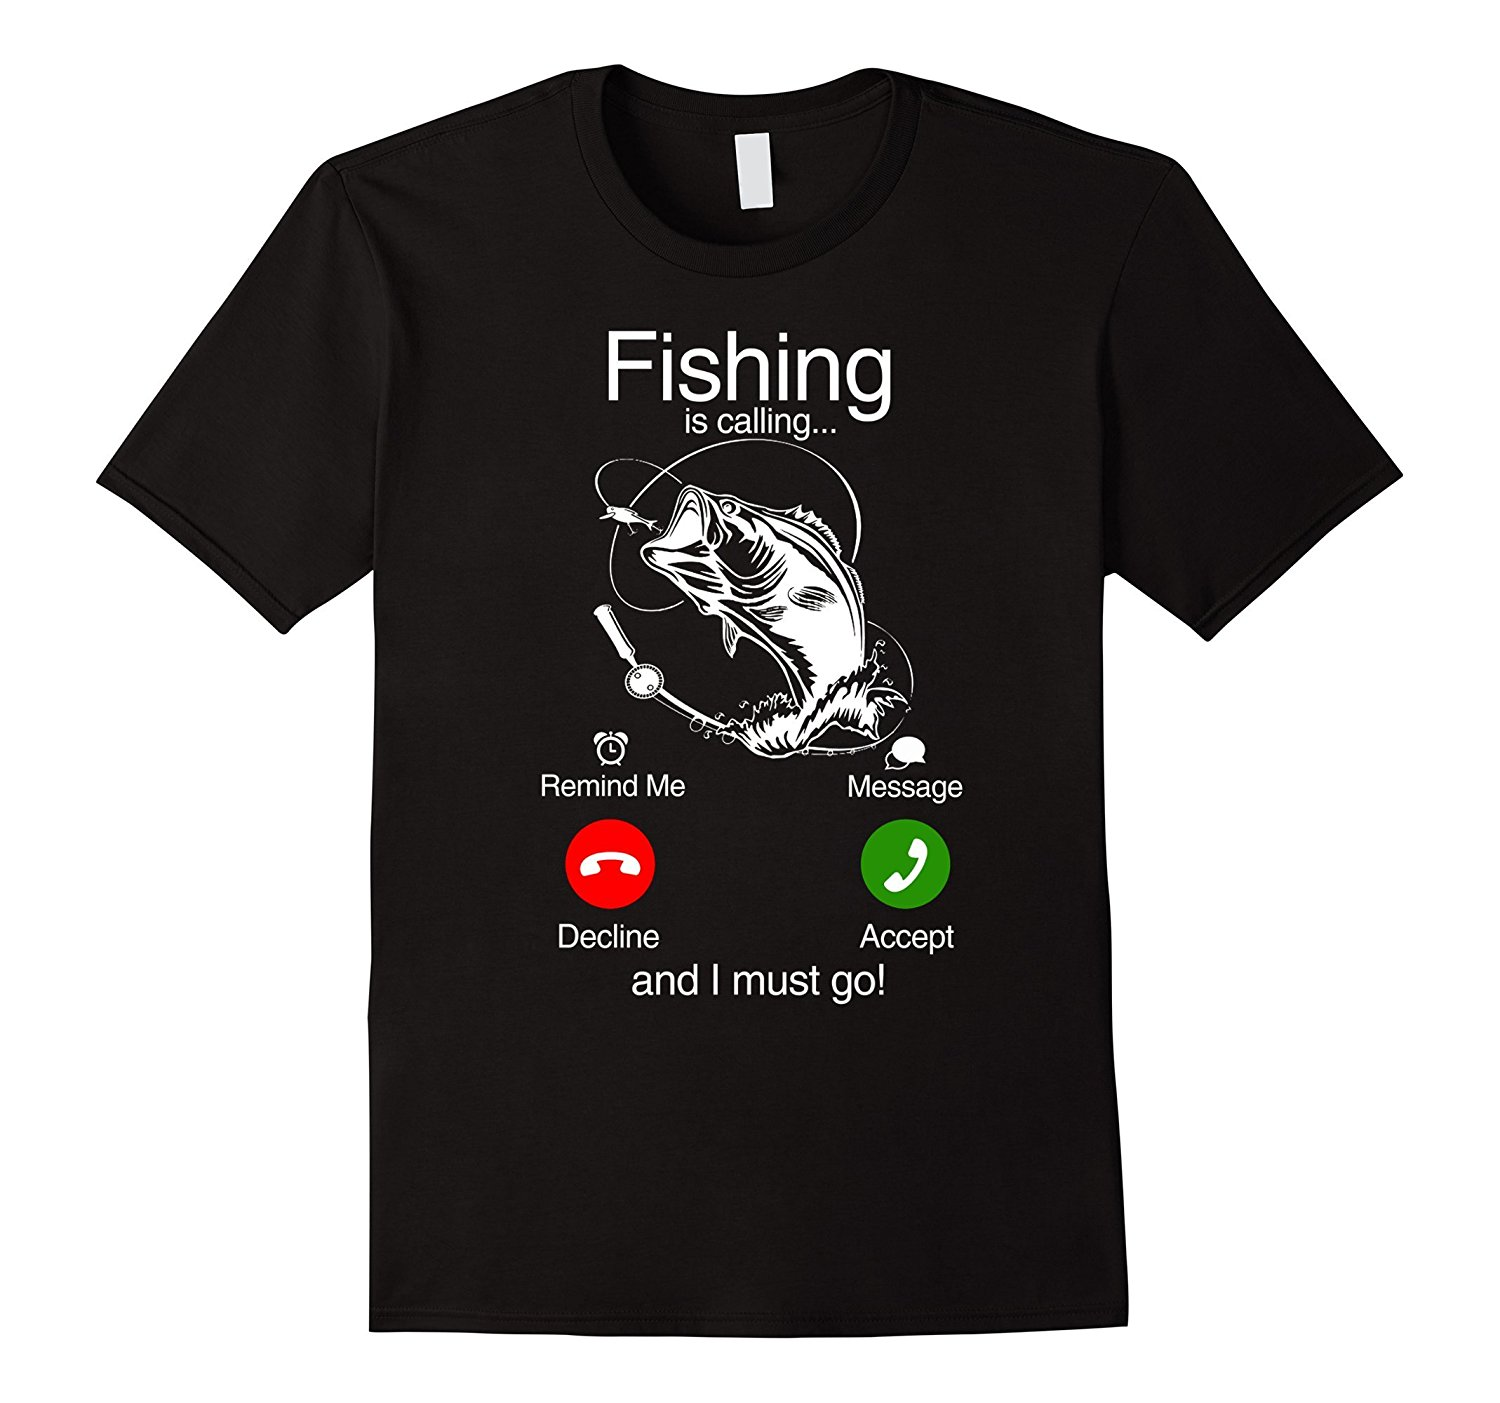 Fishinger Is Calling and I Must Go Phone Screen Tee Round Neck Clothes 100% Cotton Summer   T     Shirt   New Fashion   T  -  Shirt